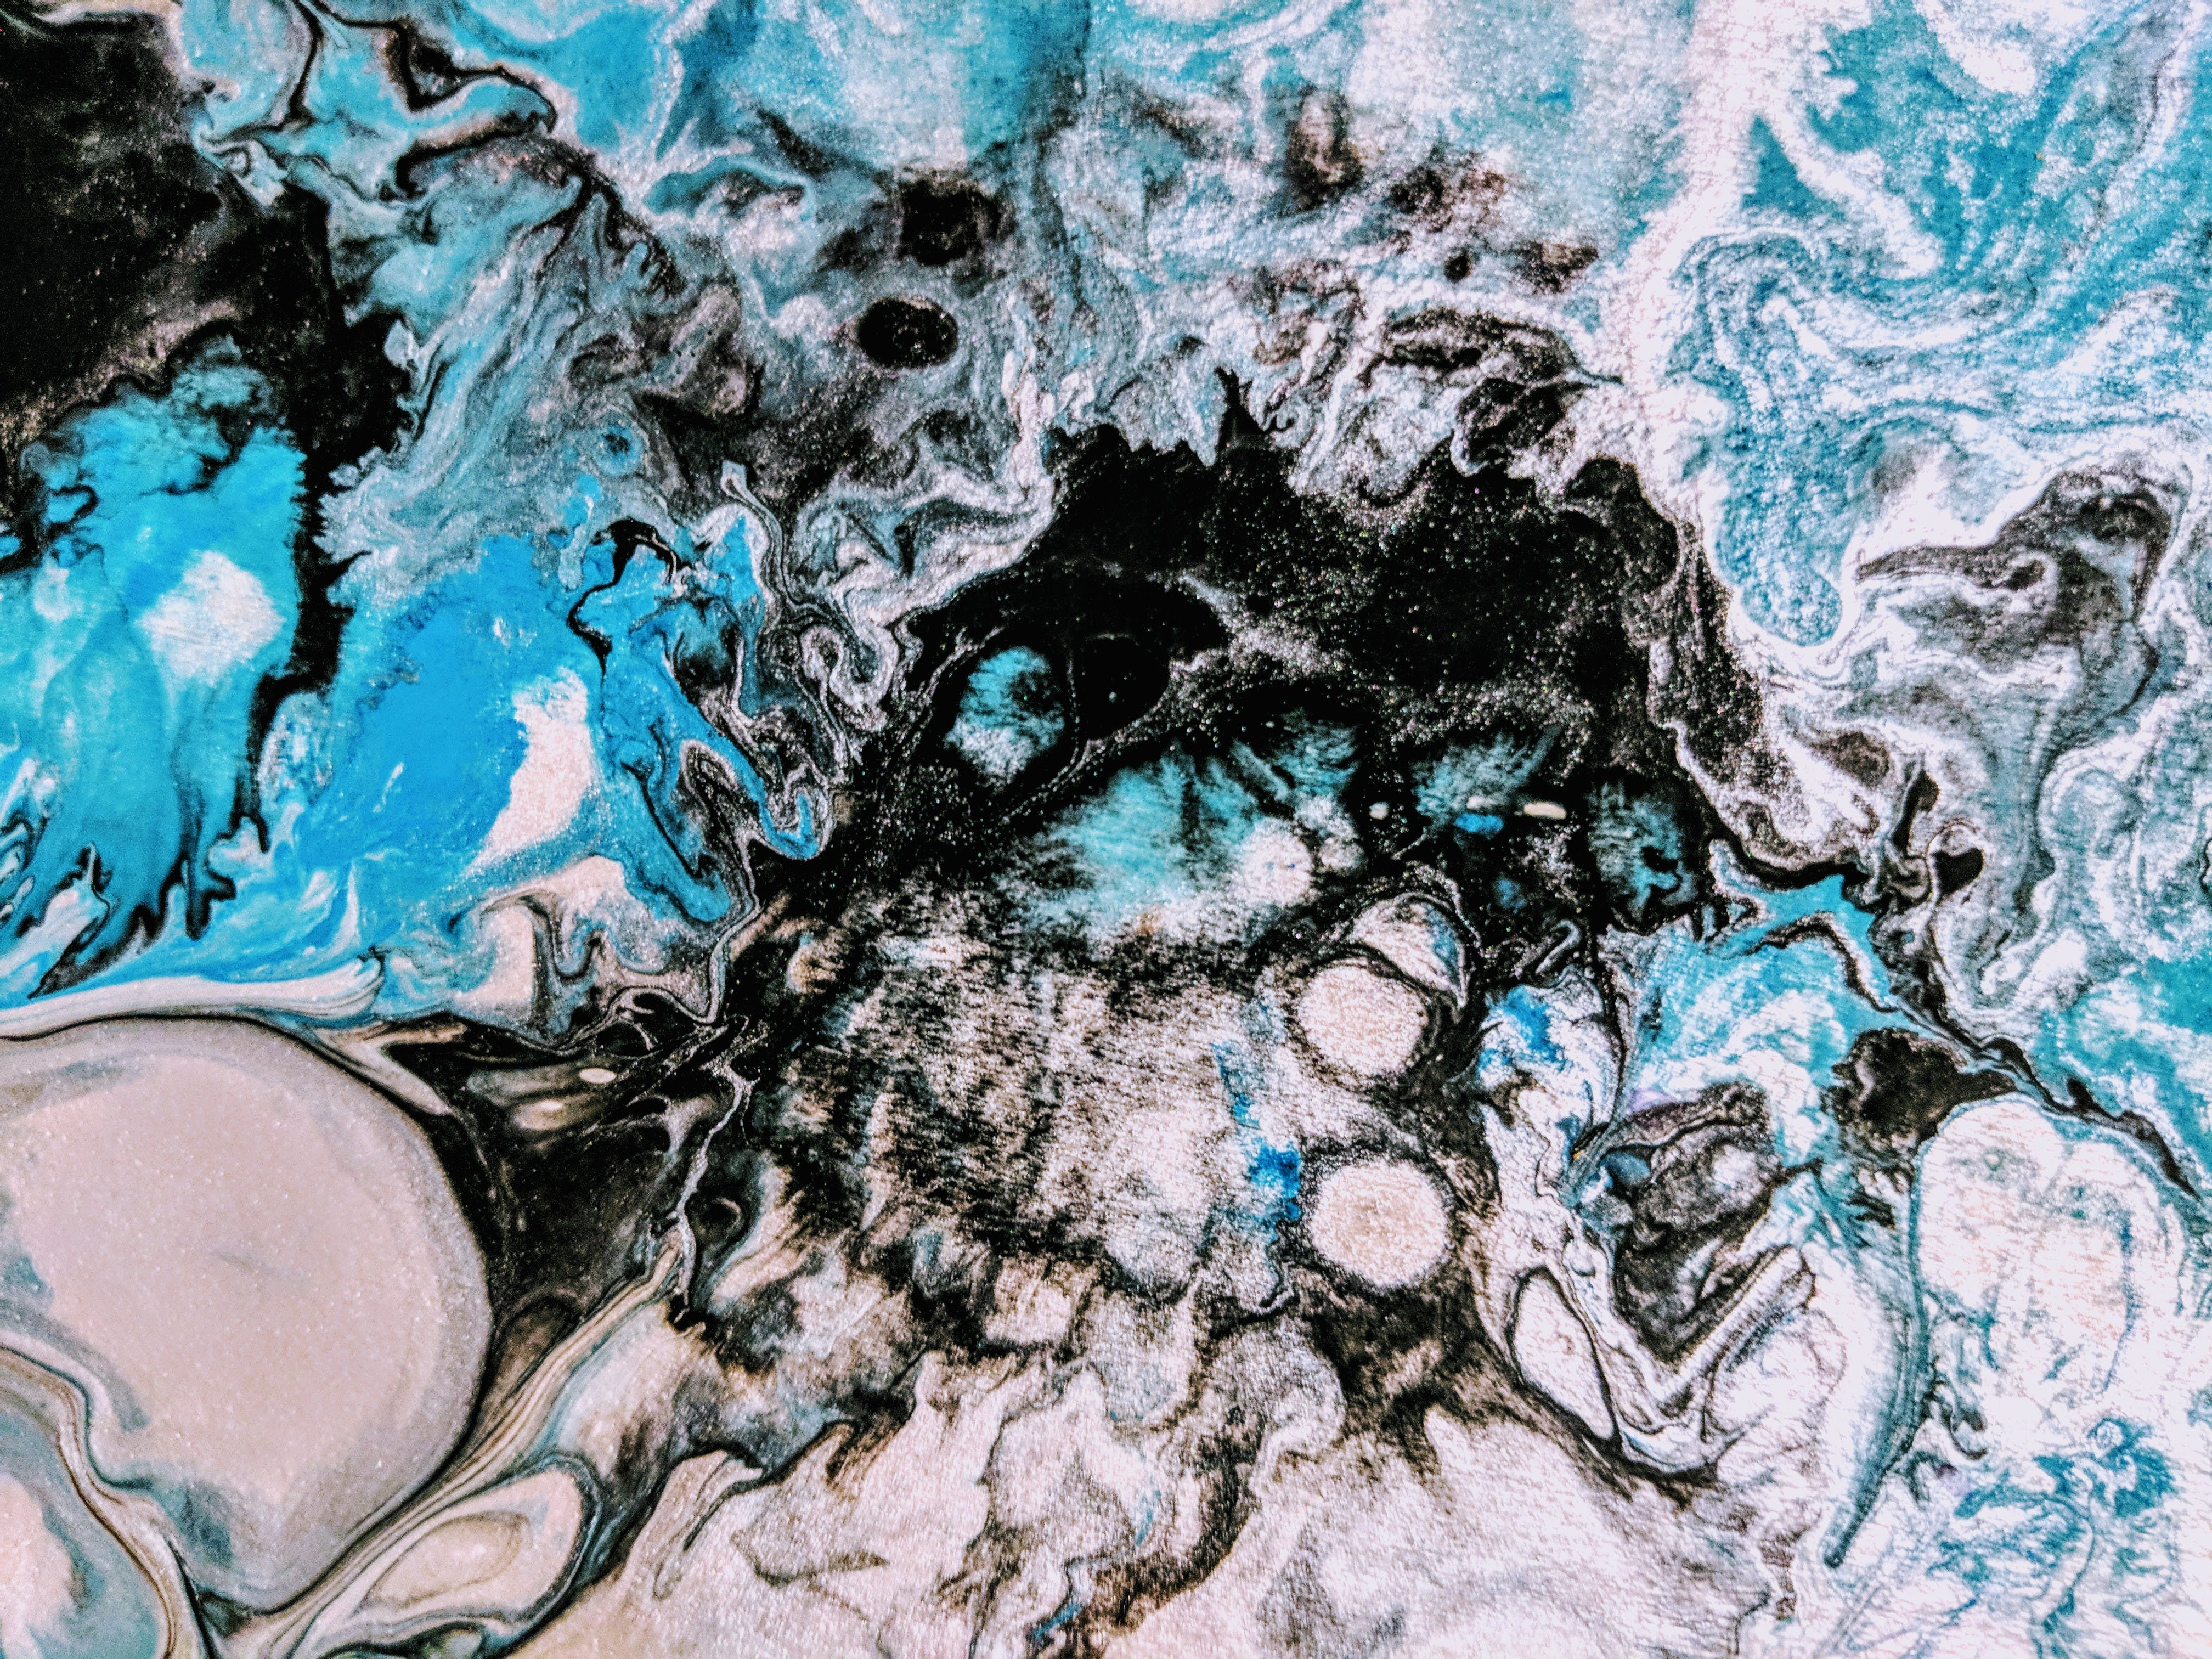 Free stock photo of abstract, black, painting, turquoise